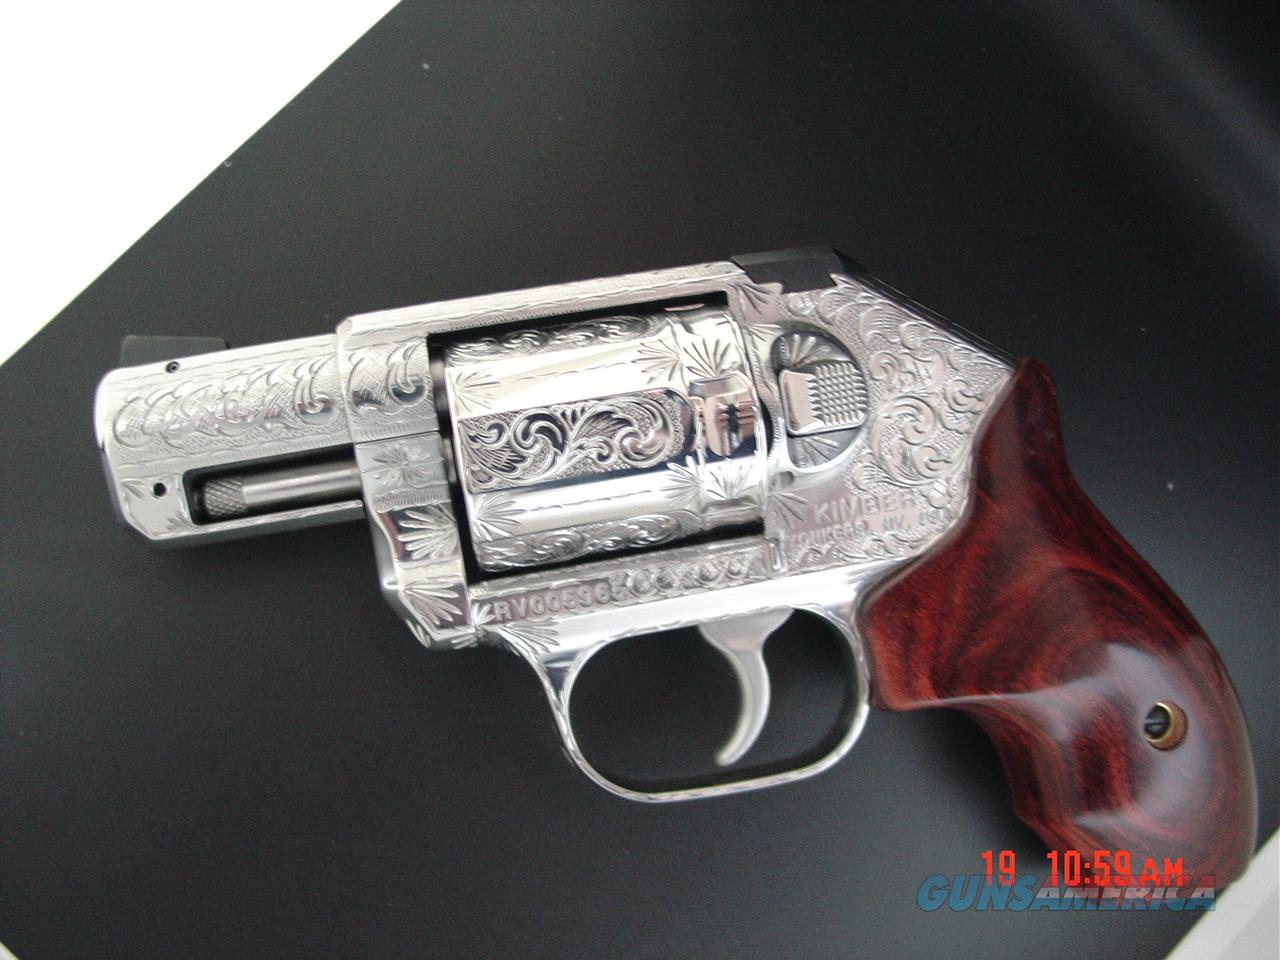 Kimber K6S 357 magnum,fully engraved & polished by Flannery Engraving,6 shots,Rosewood grips,in box with manual etc.awesome work of art !!  Guns > Pistols > Kimber of America Pistols > Revolvers